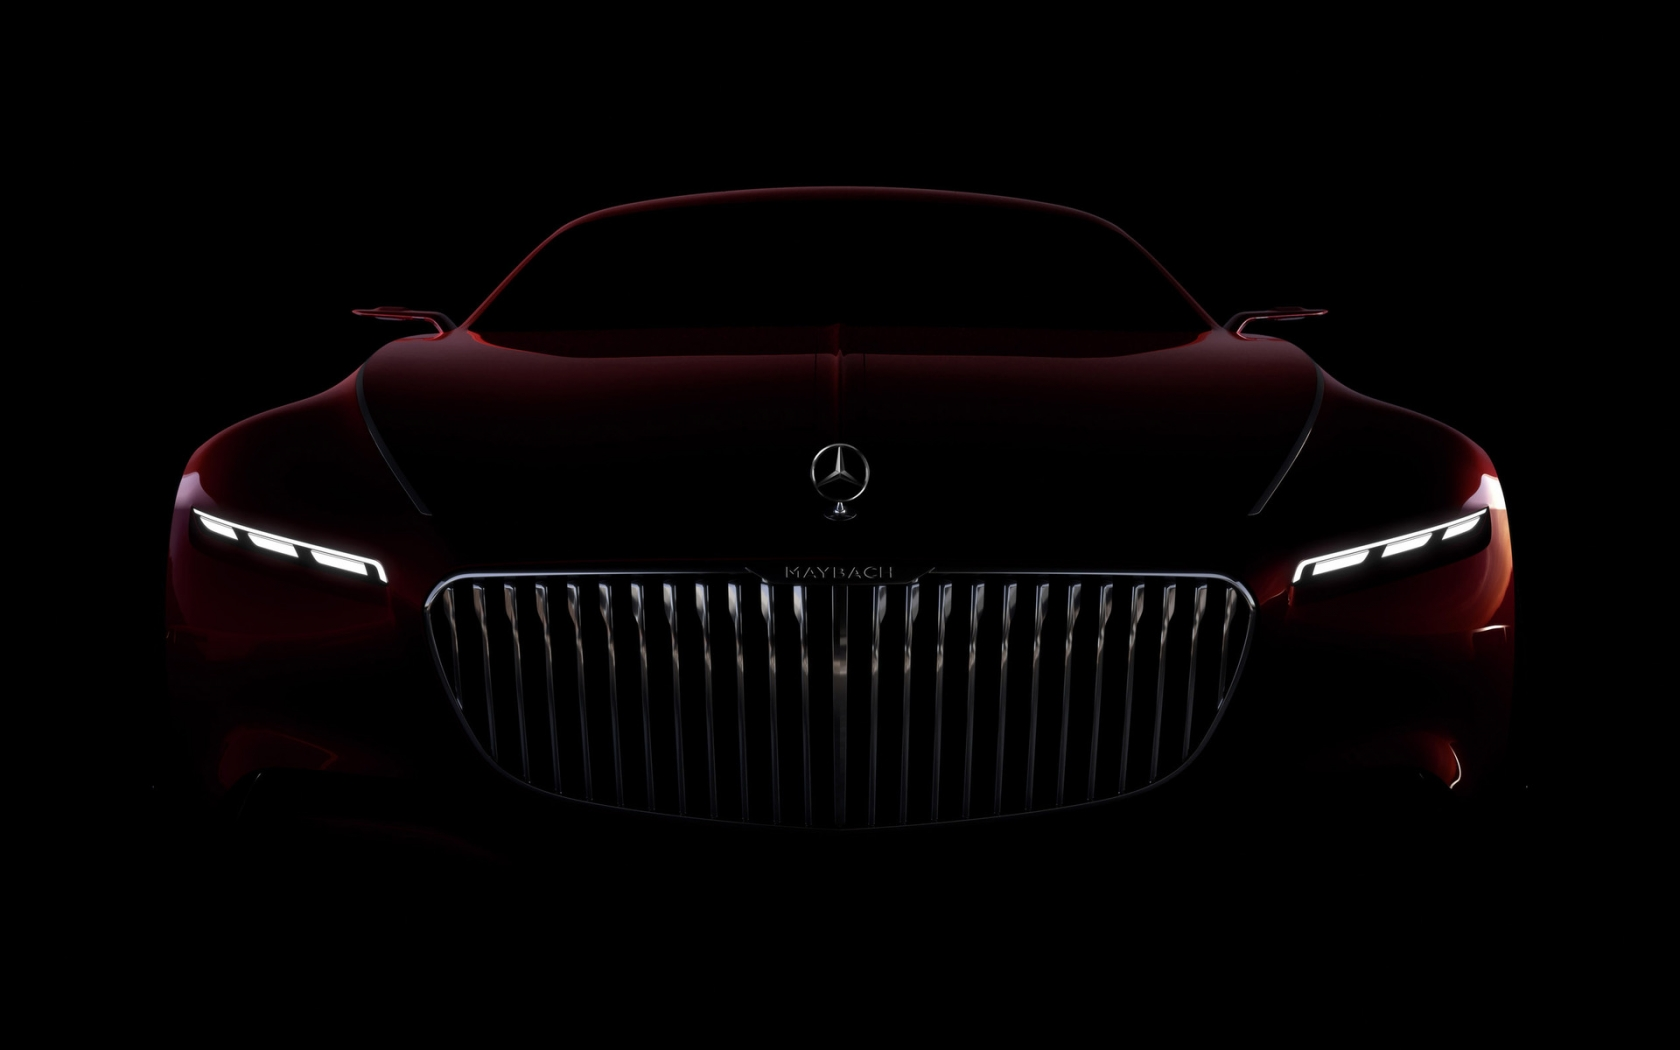 Amazing Vision Mercedes Maybach 6 2016 for 1680 x 1050 widescreen resolution